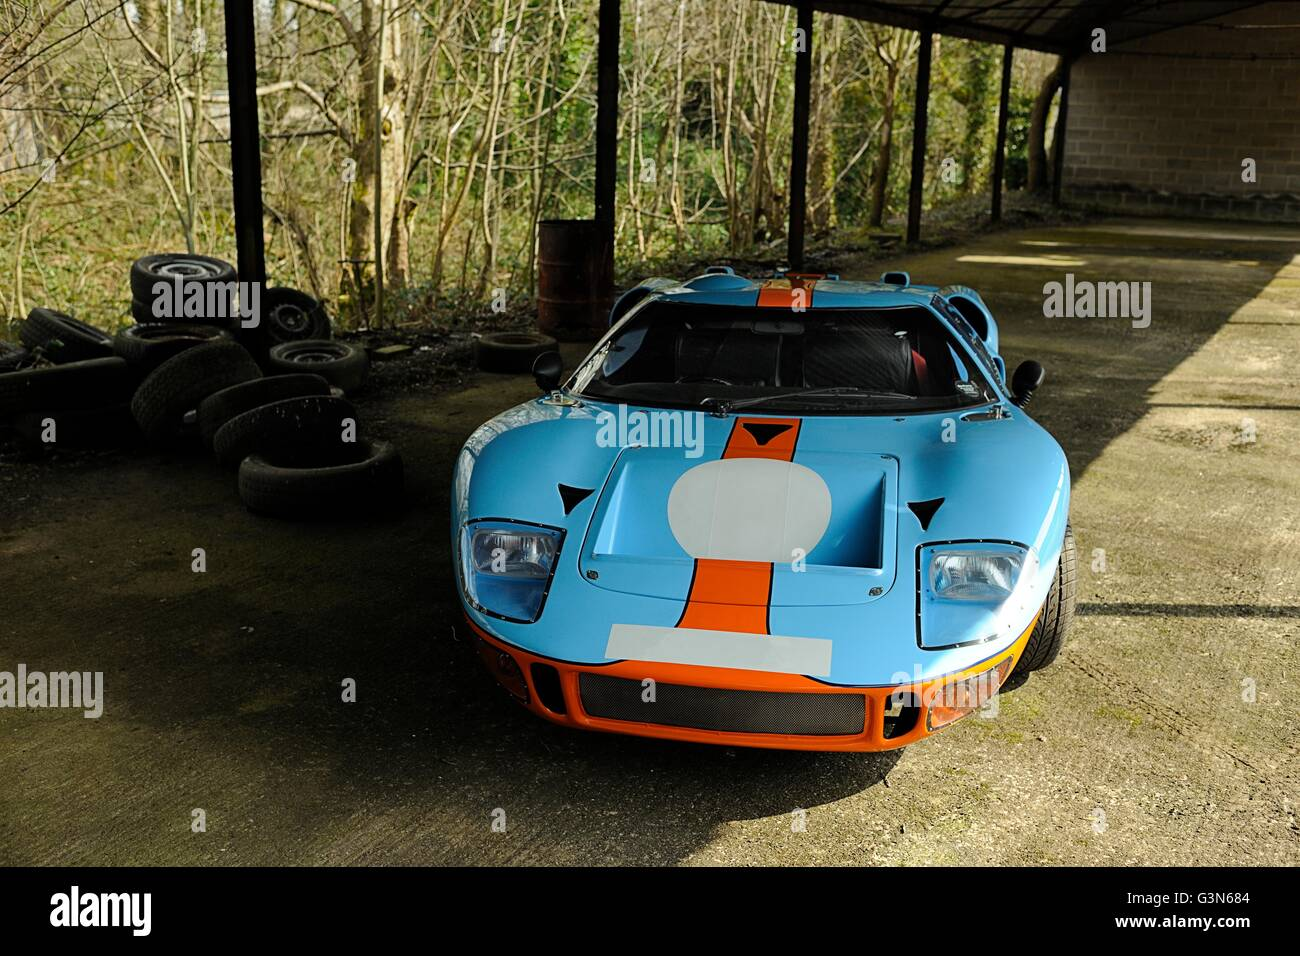 Front view of Ford GT MkII in Gulf Racing livery parked under a covered shed - Stock Image